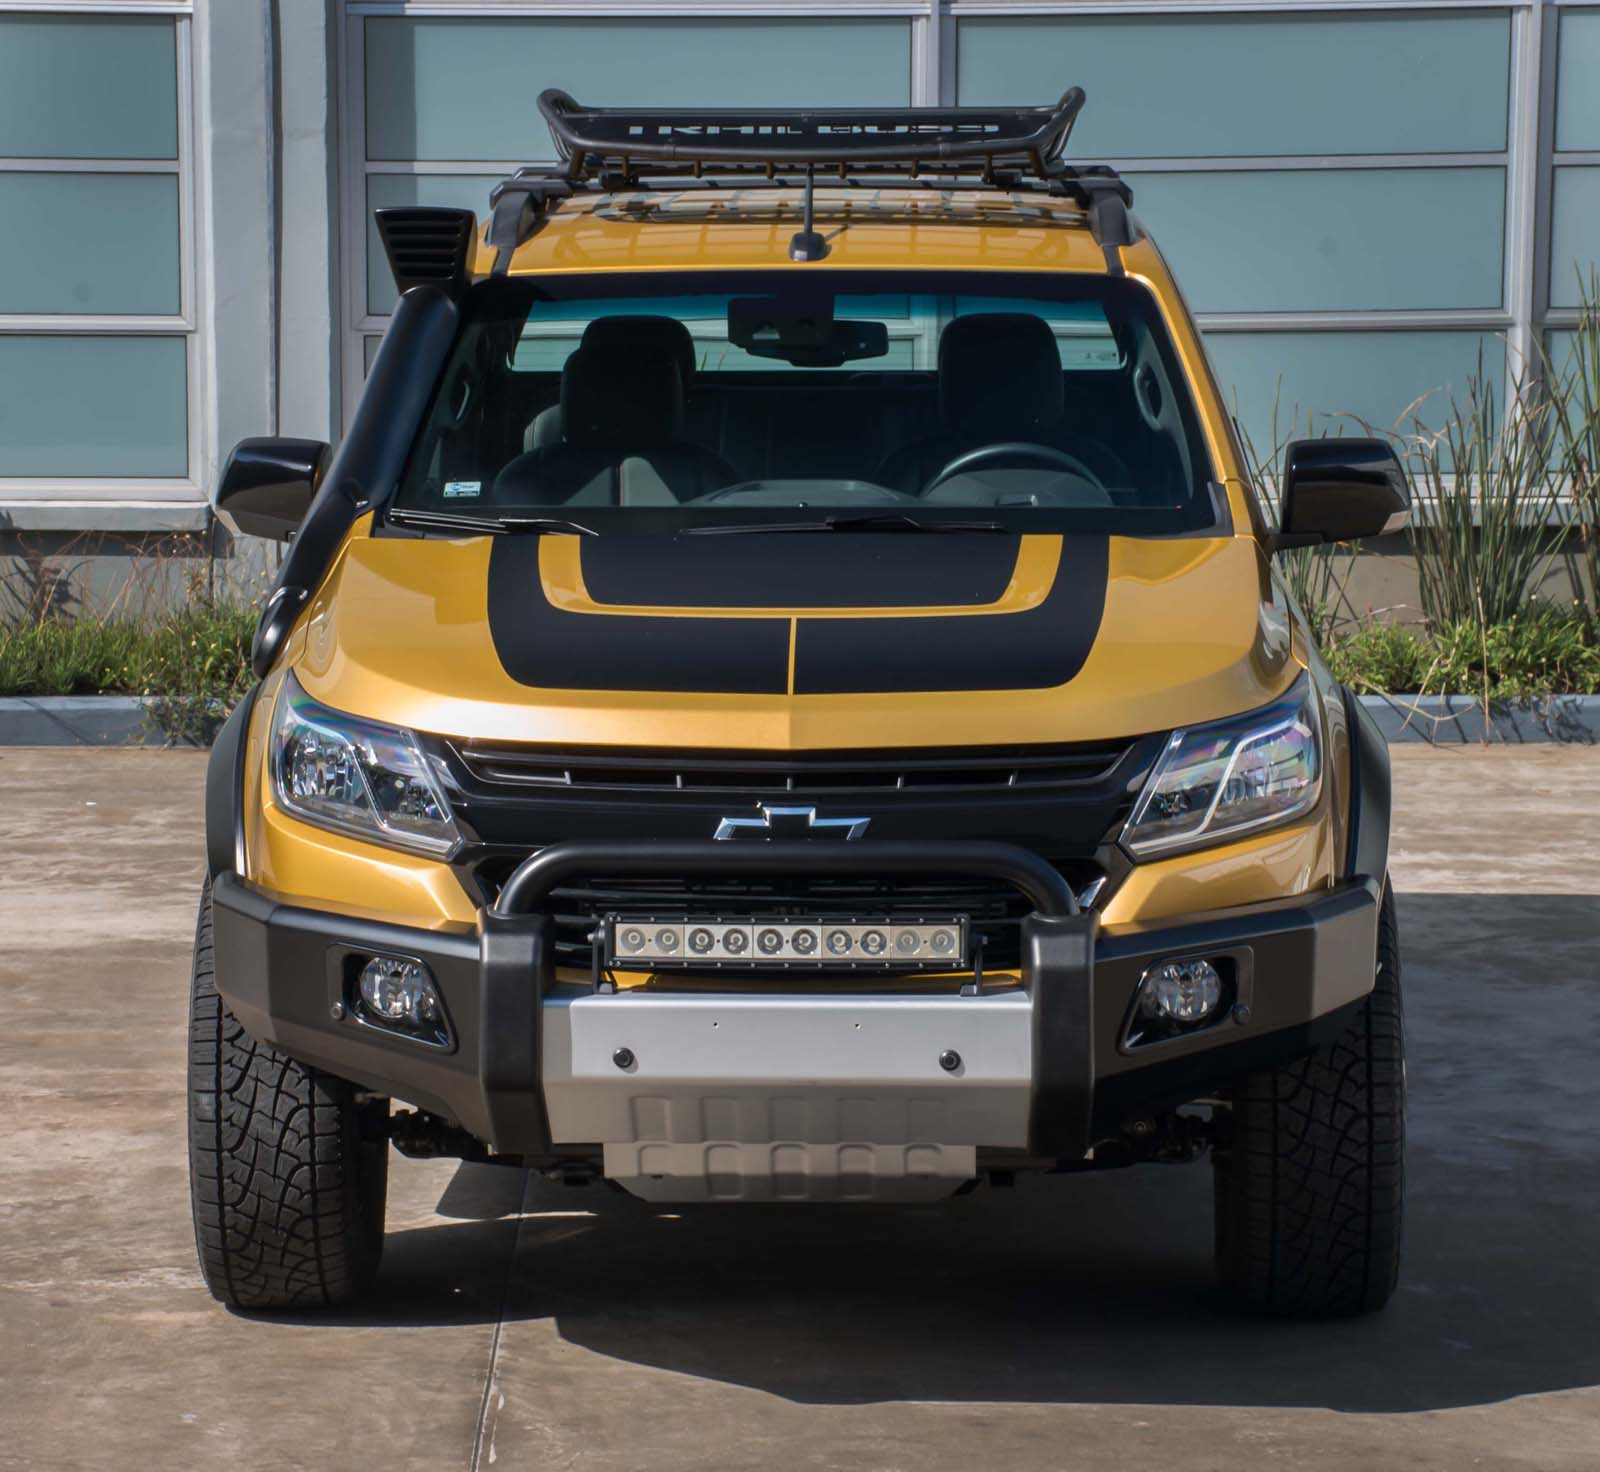 Chevrolet S10 Trailboss Concept Looks Ready To Go Offroad